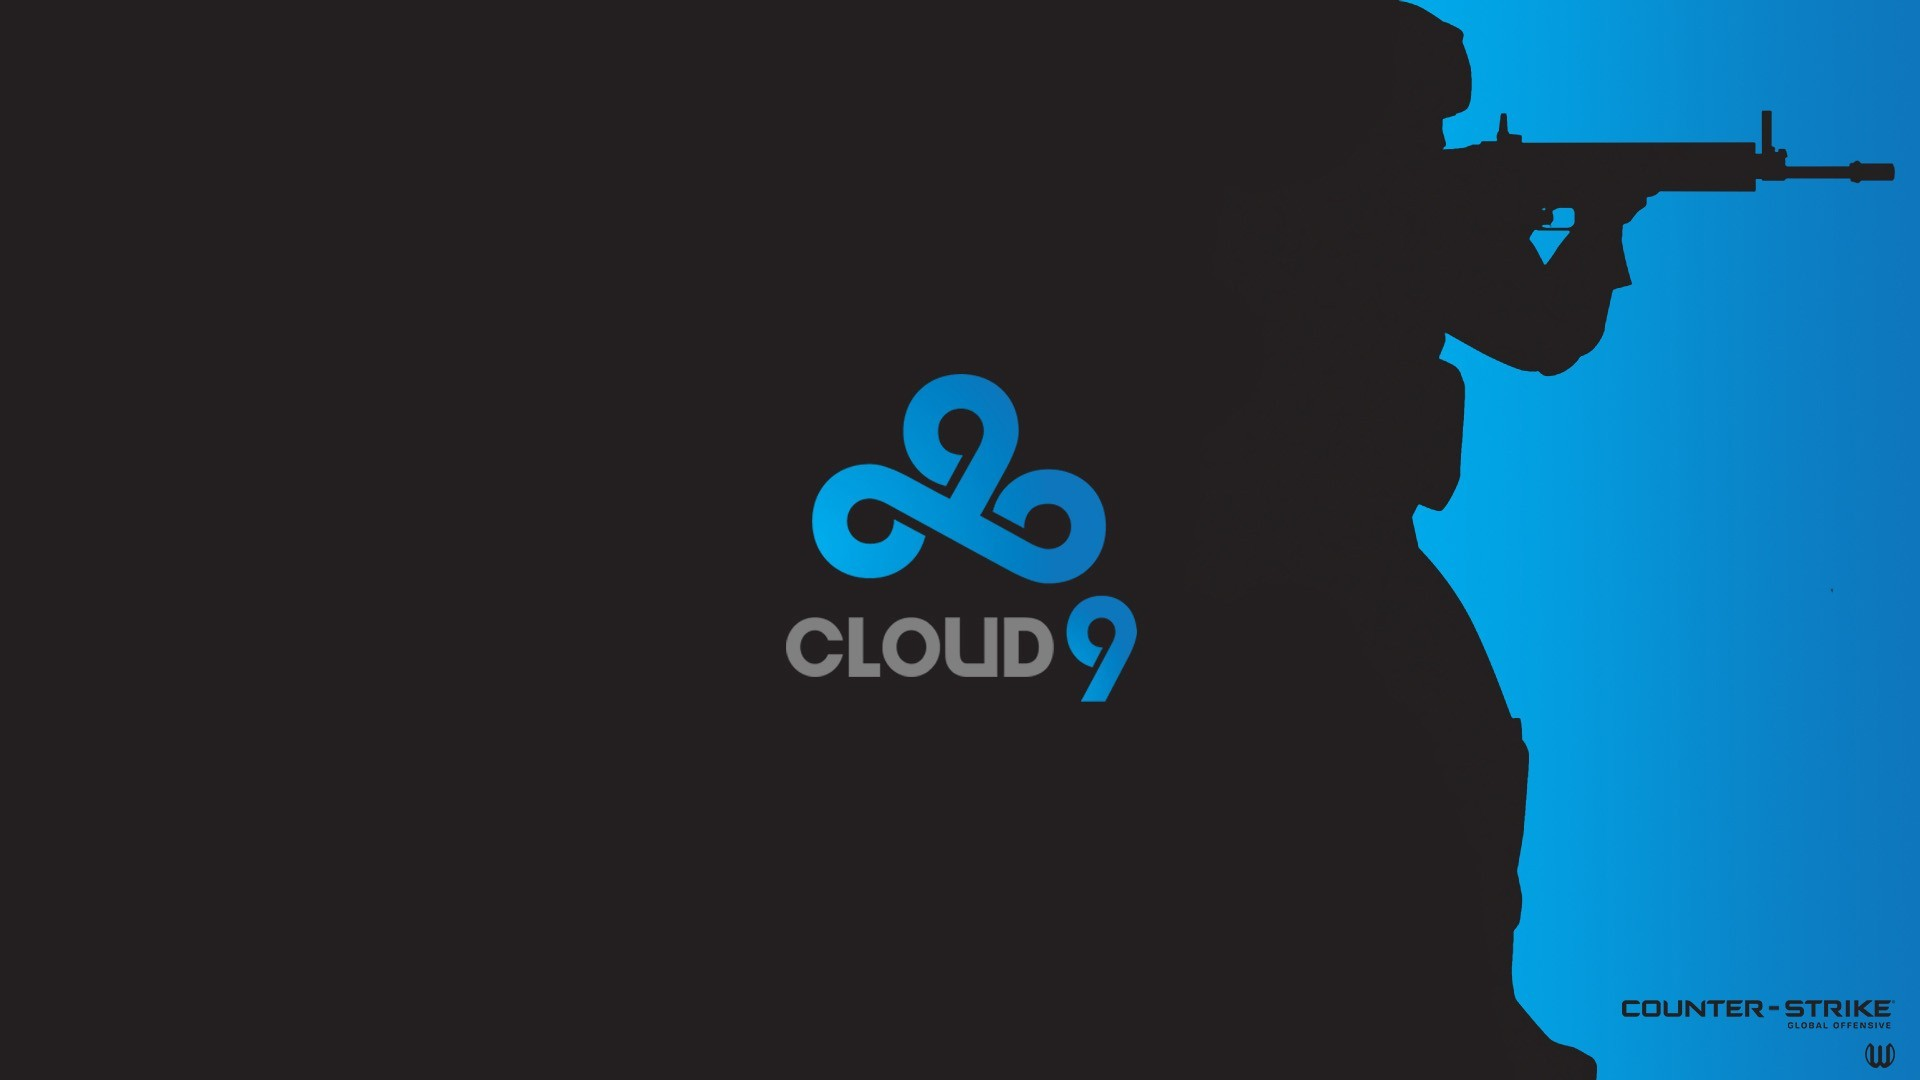 soldier, Cloud9, Shroud, Minimalism, Counter Strike, Video games Wallpapers  HD / Desktop and Mobile Backgrounds